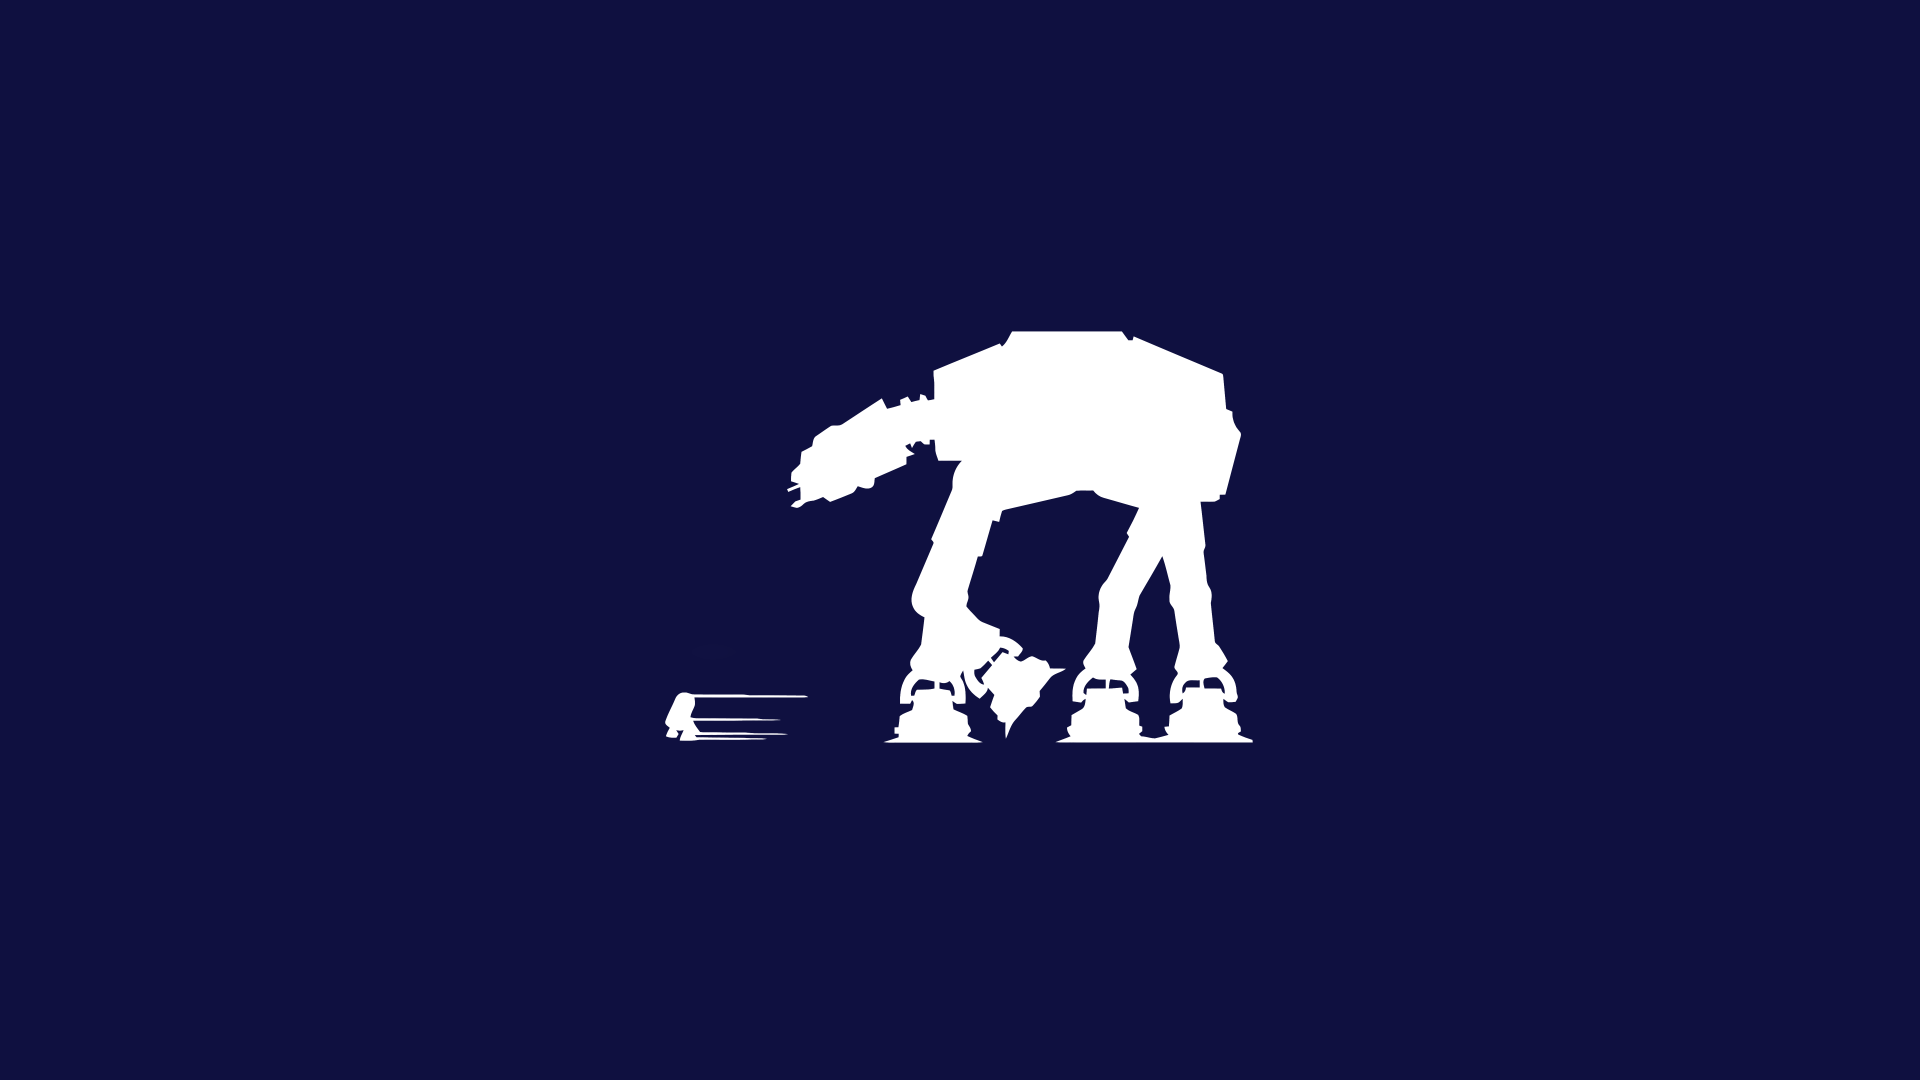 Star Wars Wallpapers Clone - HD Desktop Wallpapers